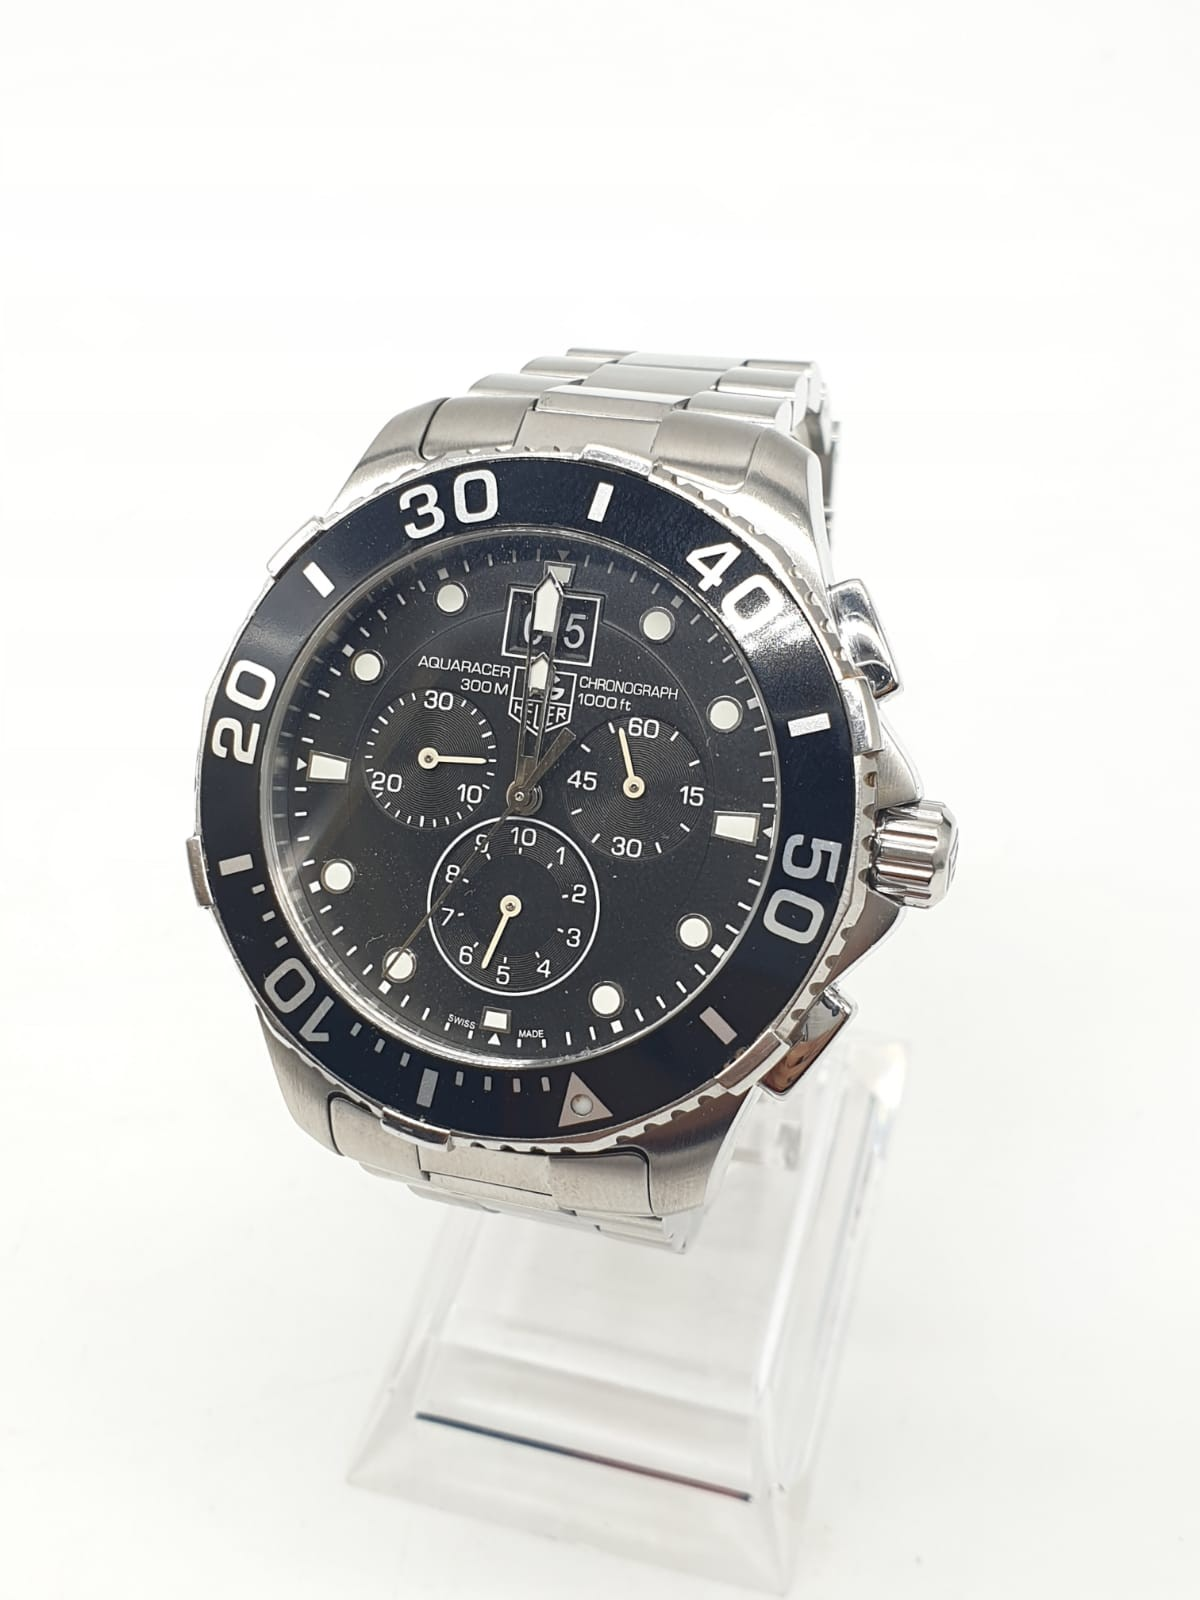 Tag Heuer gents chronograph Aquaracer watch, black face twisted bezel and steel strap, 44mm case - Image 12 of 14